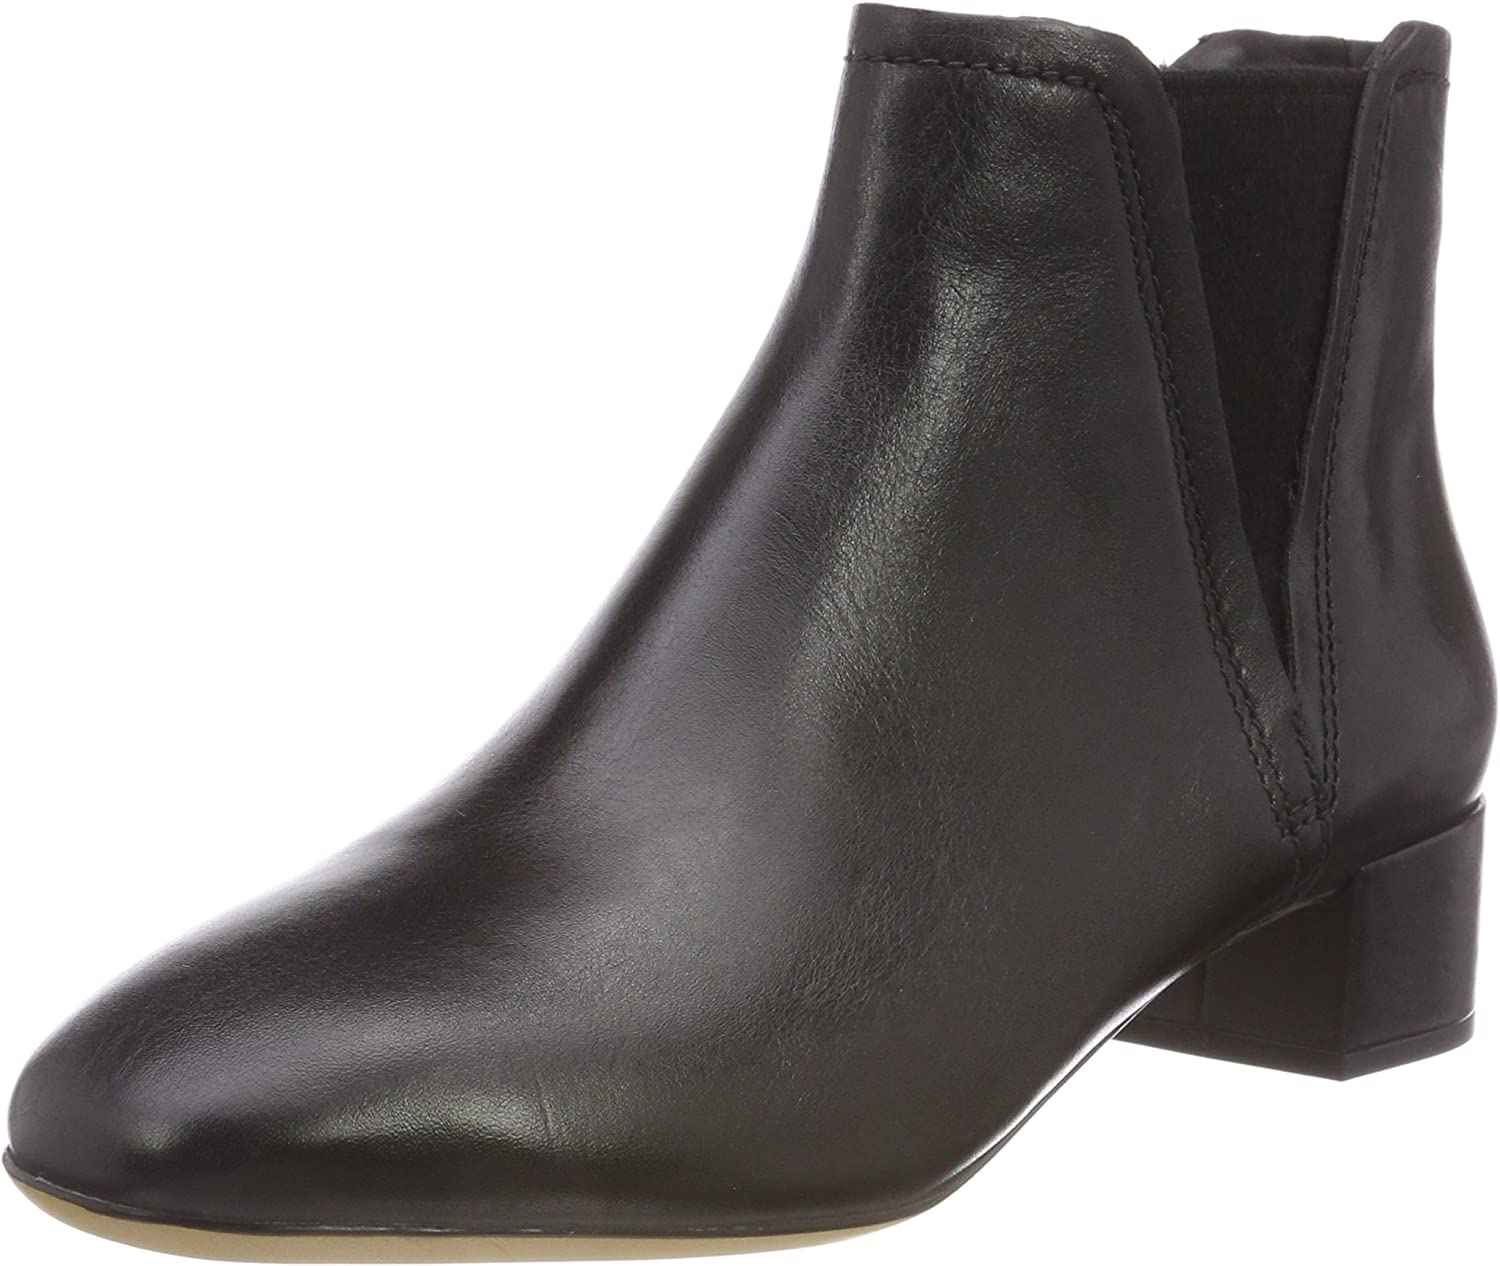 Orabella Ruby Ankle Boots